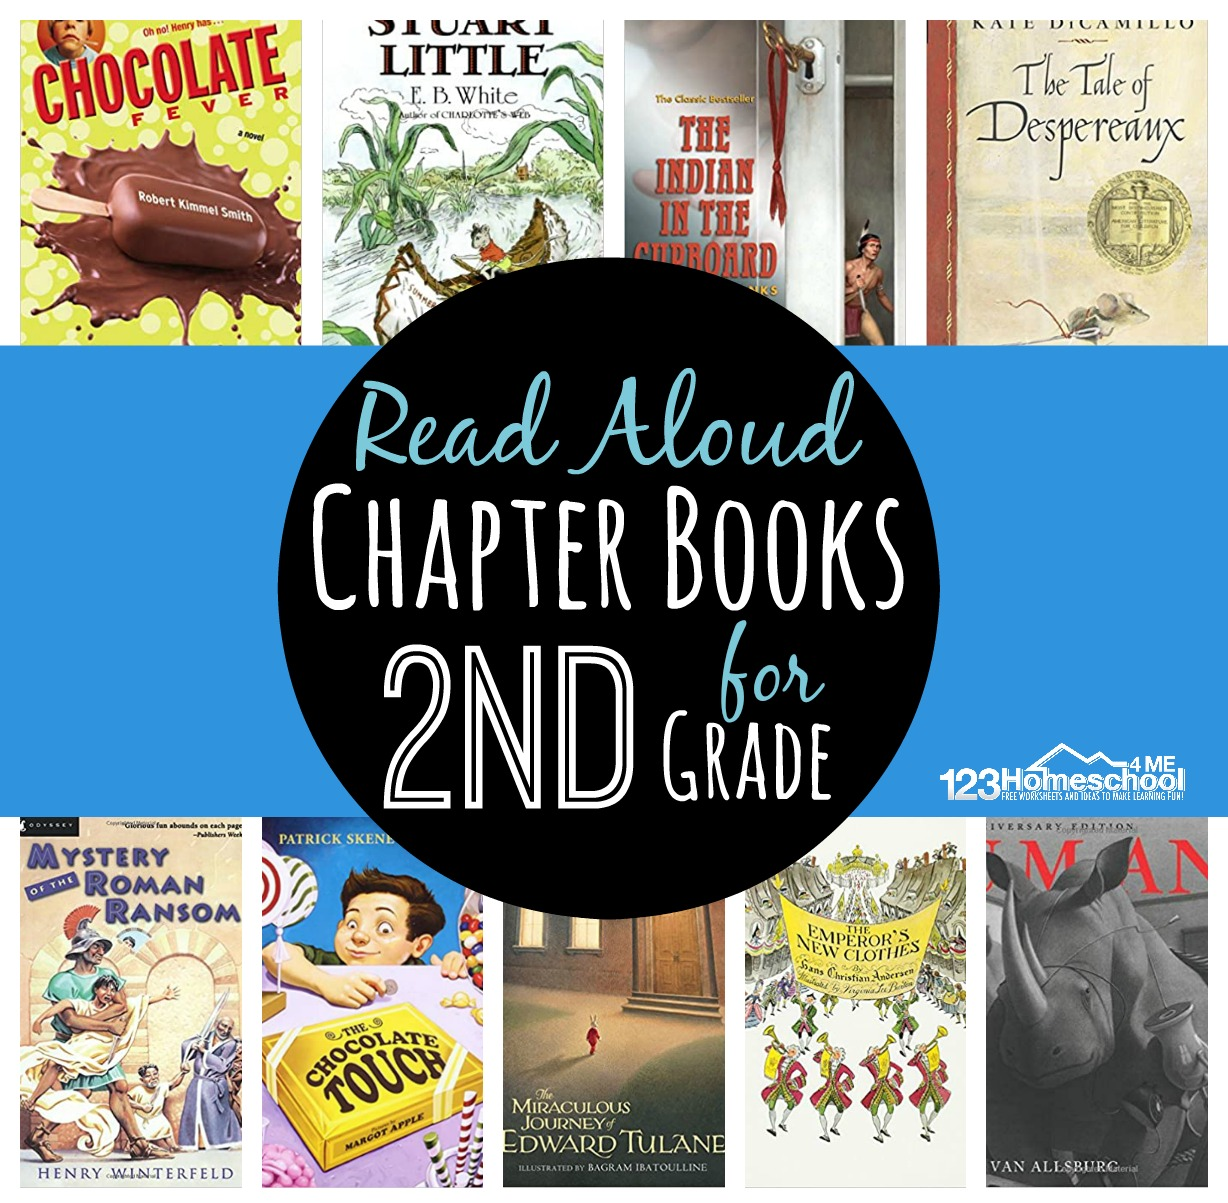 Read Aloud Chapter Books For 2nd Grade